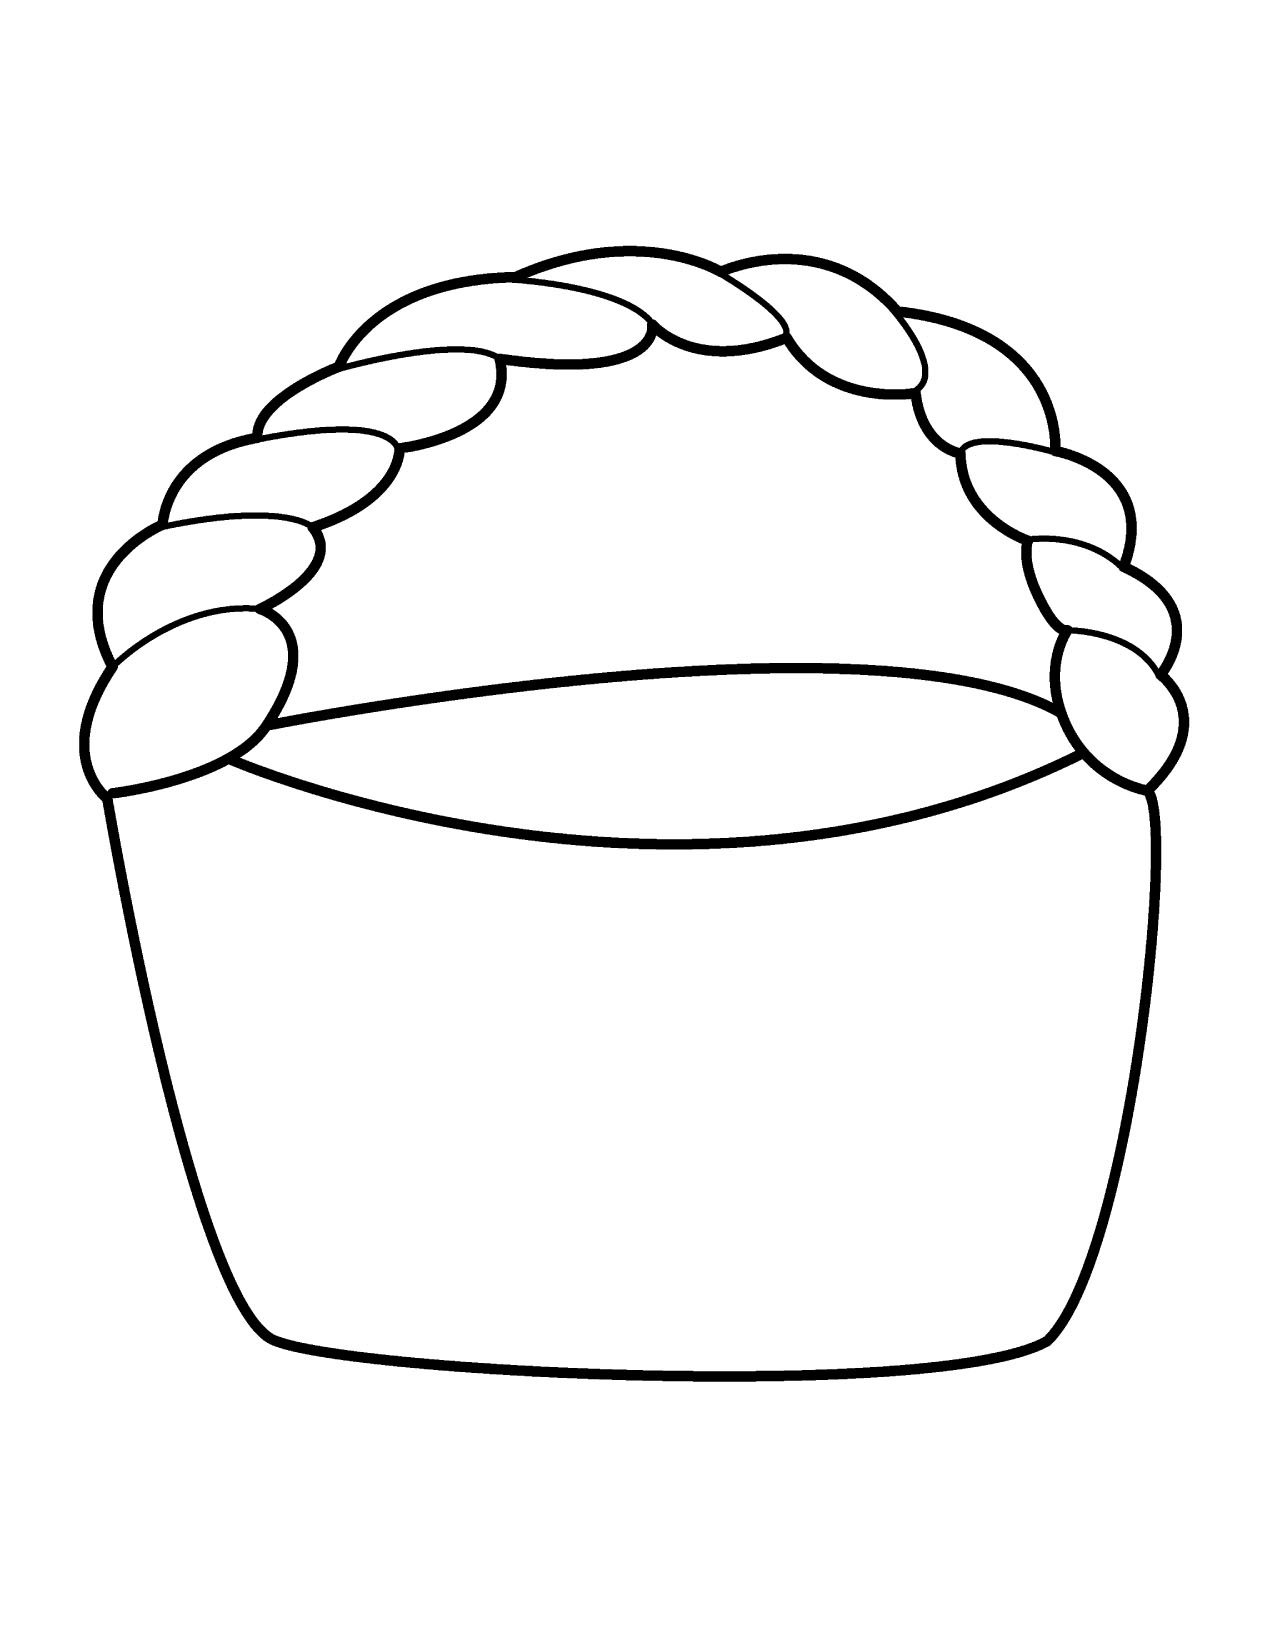 New gallery digital collection. Basket clipart line art